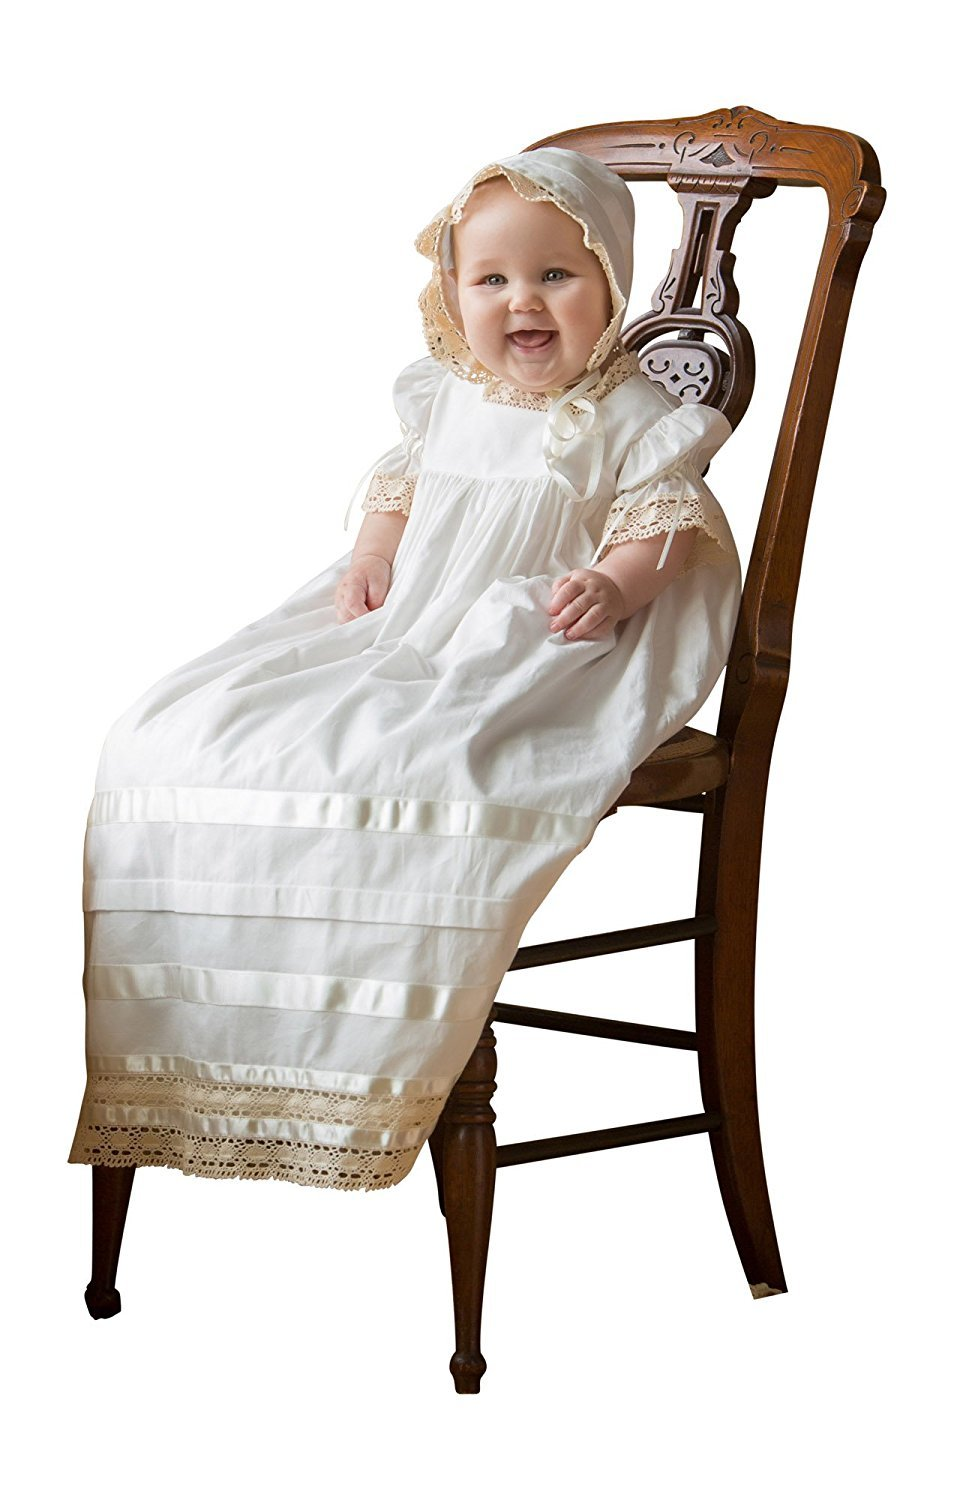 Banfvting Children Babies Lace Christening Gown with Bonnet Baptism Dresses